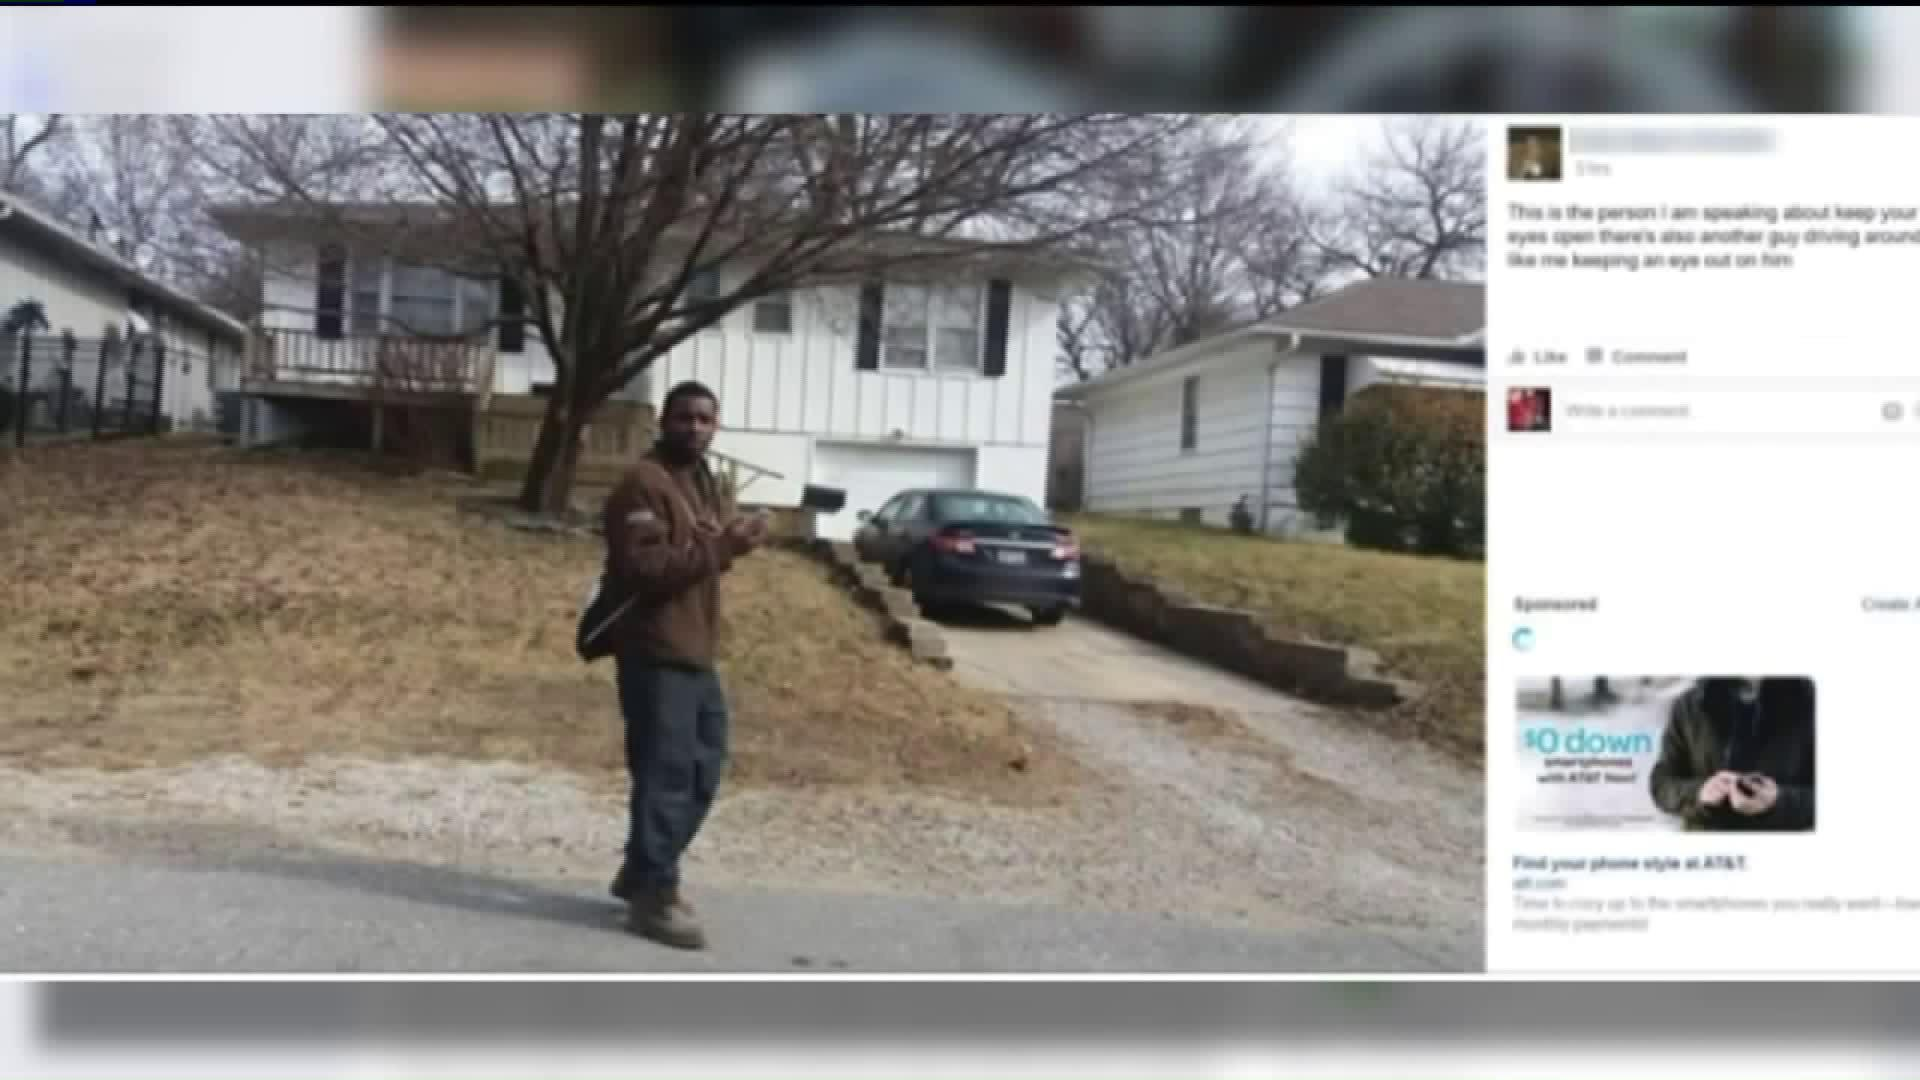 Father Humiliated After Woman Labeled Him 'Suspicious,' Posted His Photo on Facebook